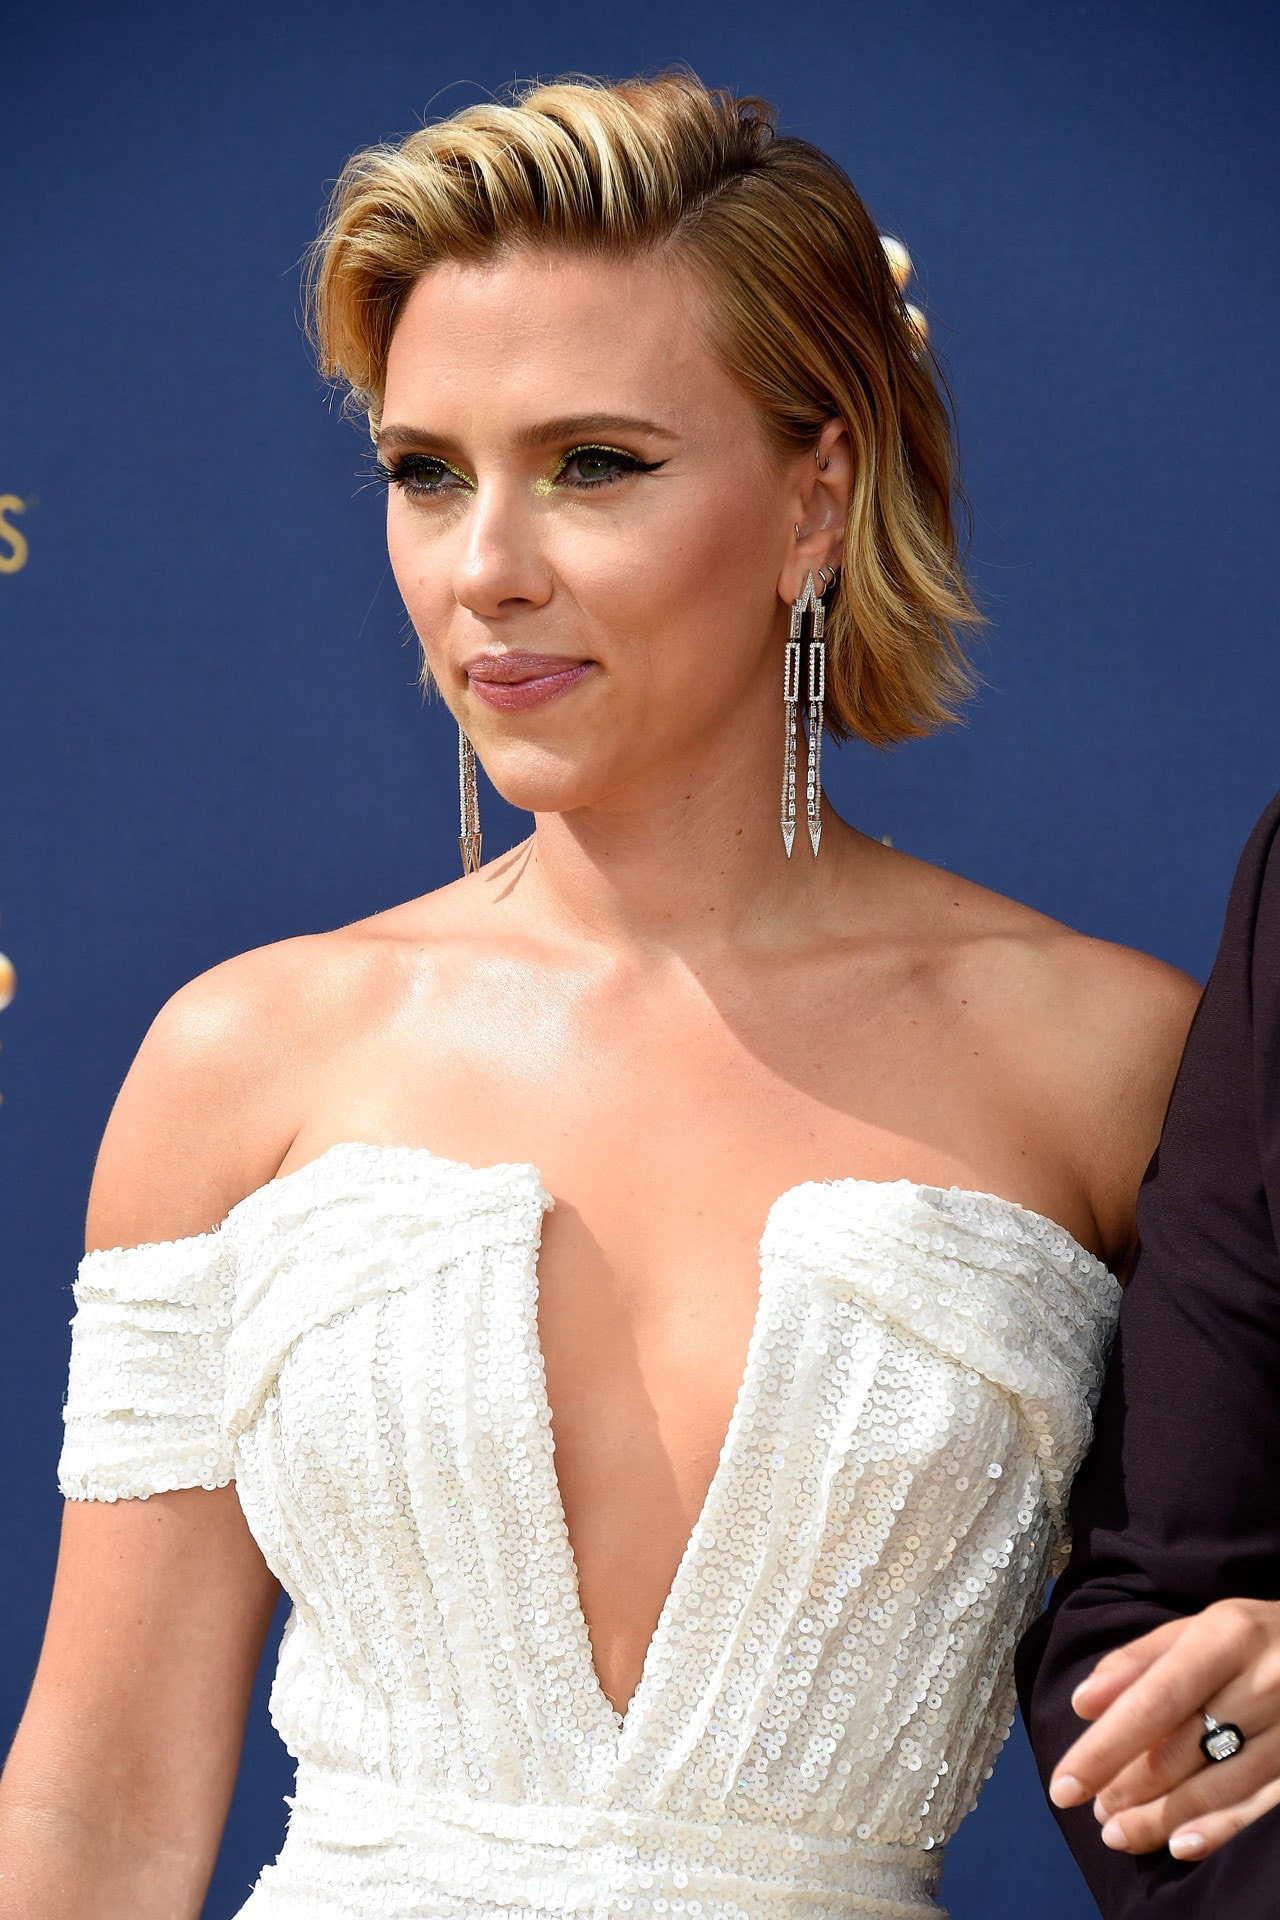 Scarlett Johansson has debuted a huge back tattoo on the 2018 Emmys red carpet